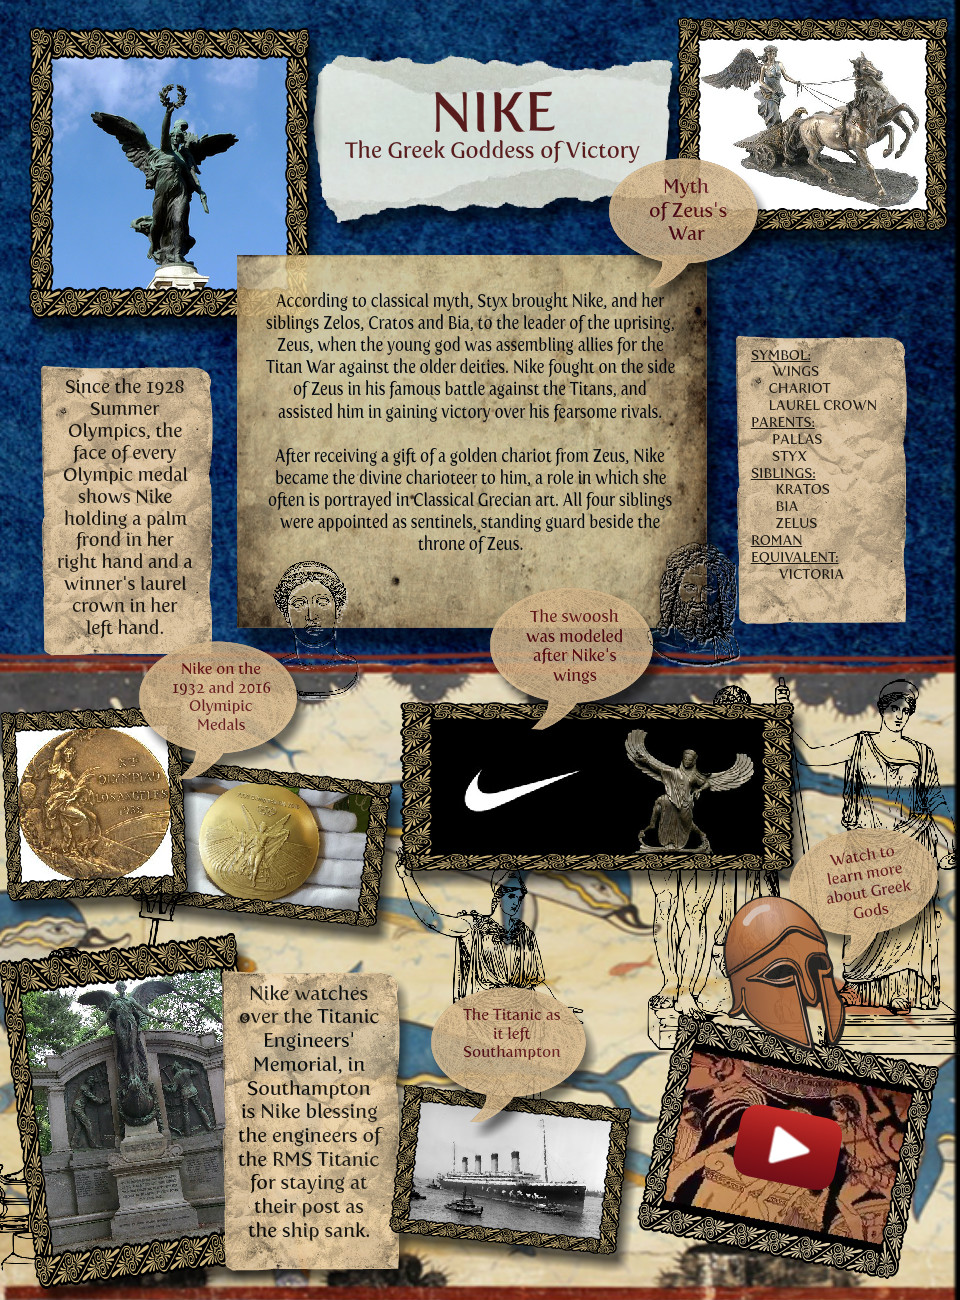 Greek God Nike Text Images Music Video Glogster Edu